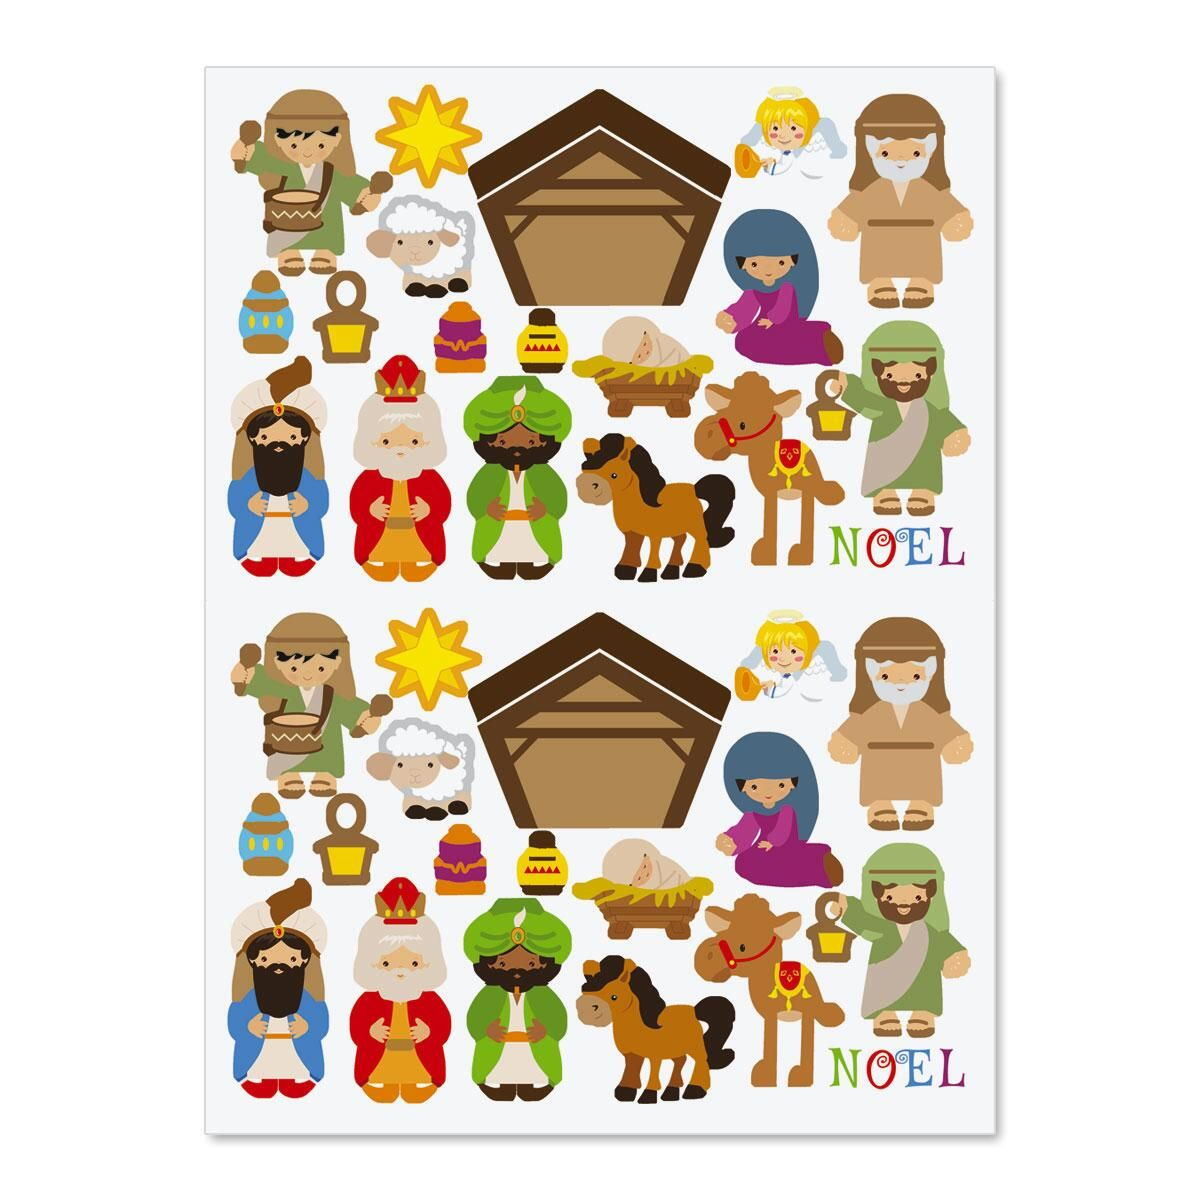 Build-a-Nativity Stickers